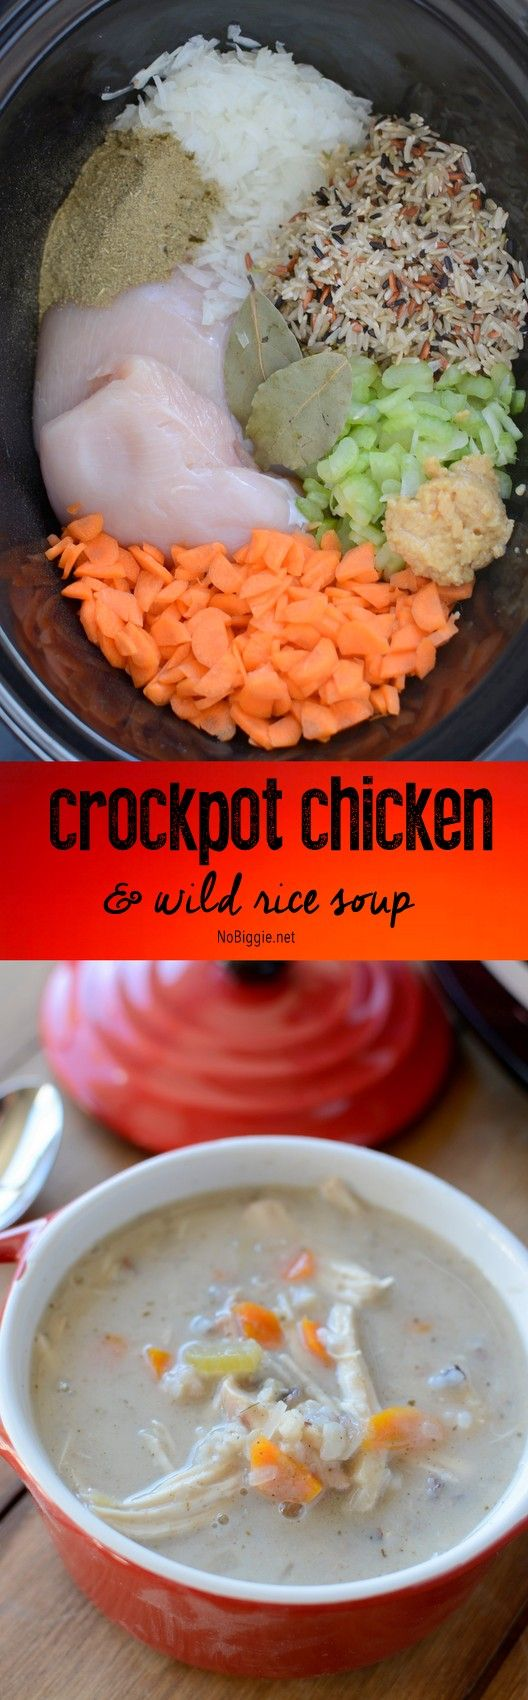 Creamy crock pot chicken and wild rice soup - a delicious hearty soup that will fill you up and warm you up!   recipe on NoBiggie.net